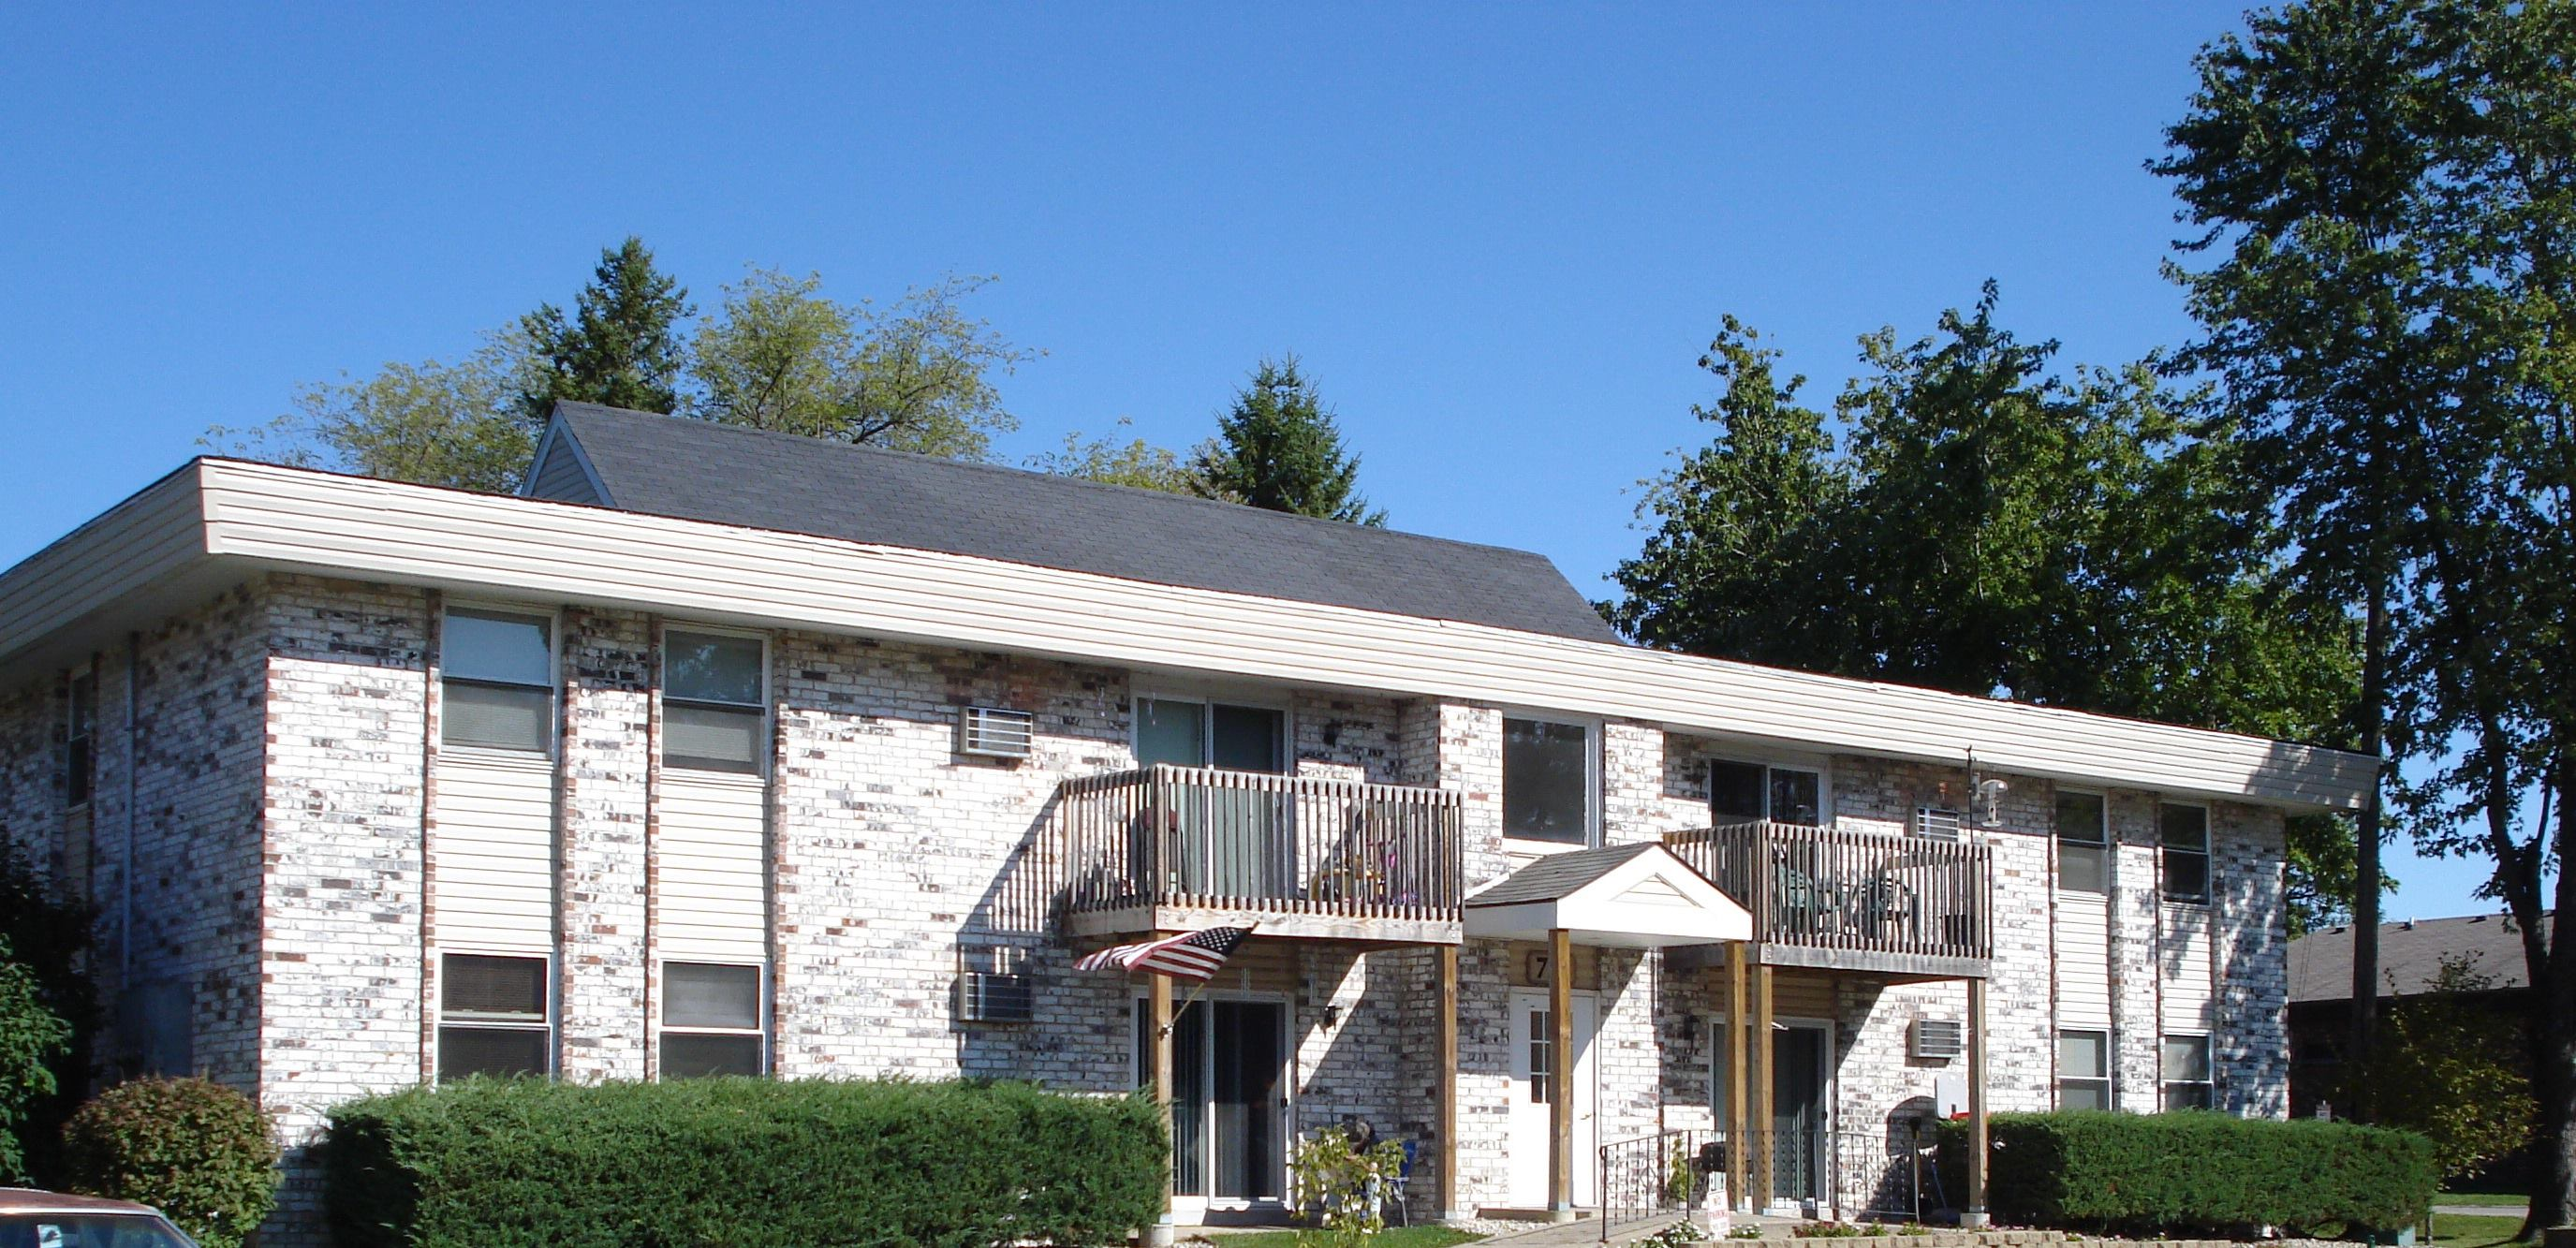 Image of Pebblebrook Apartments in Genoa City, Wisconsin